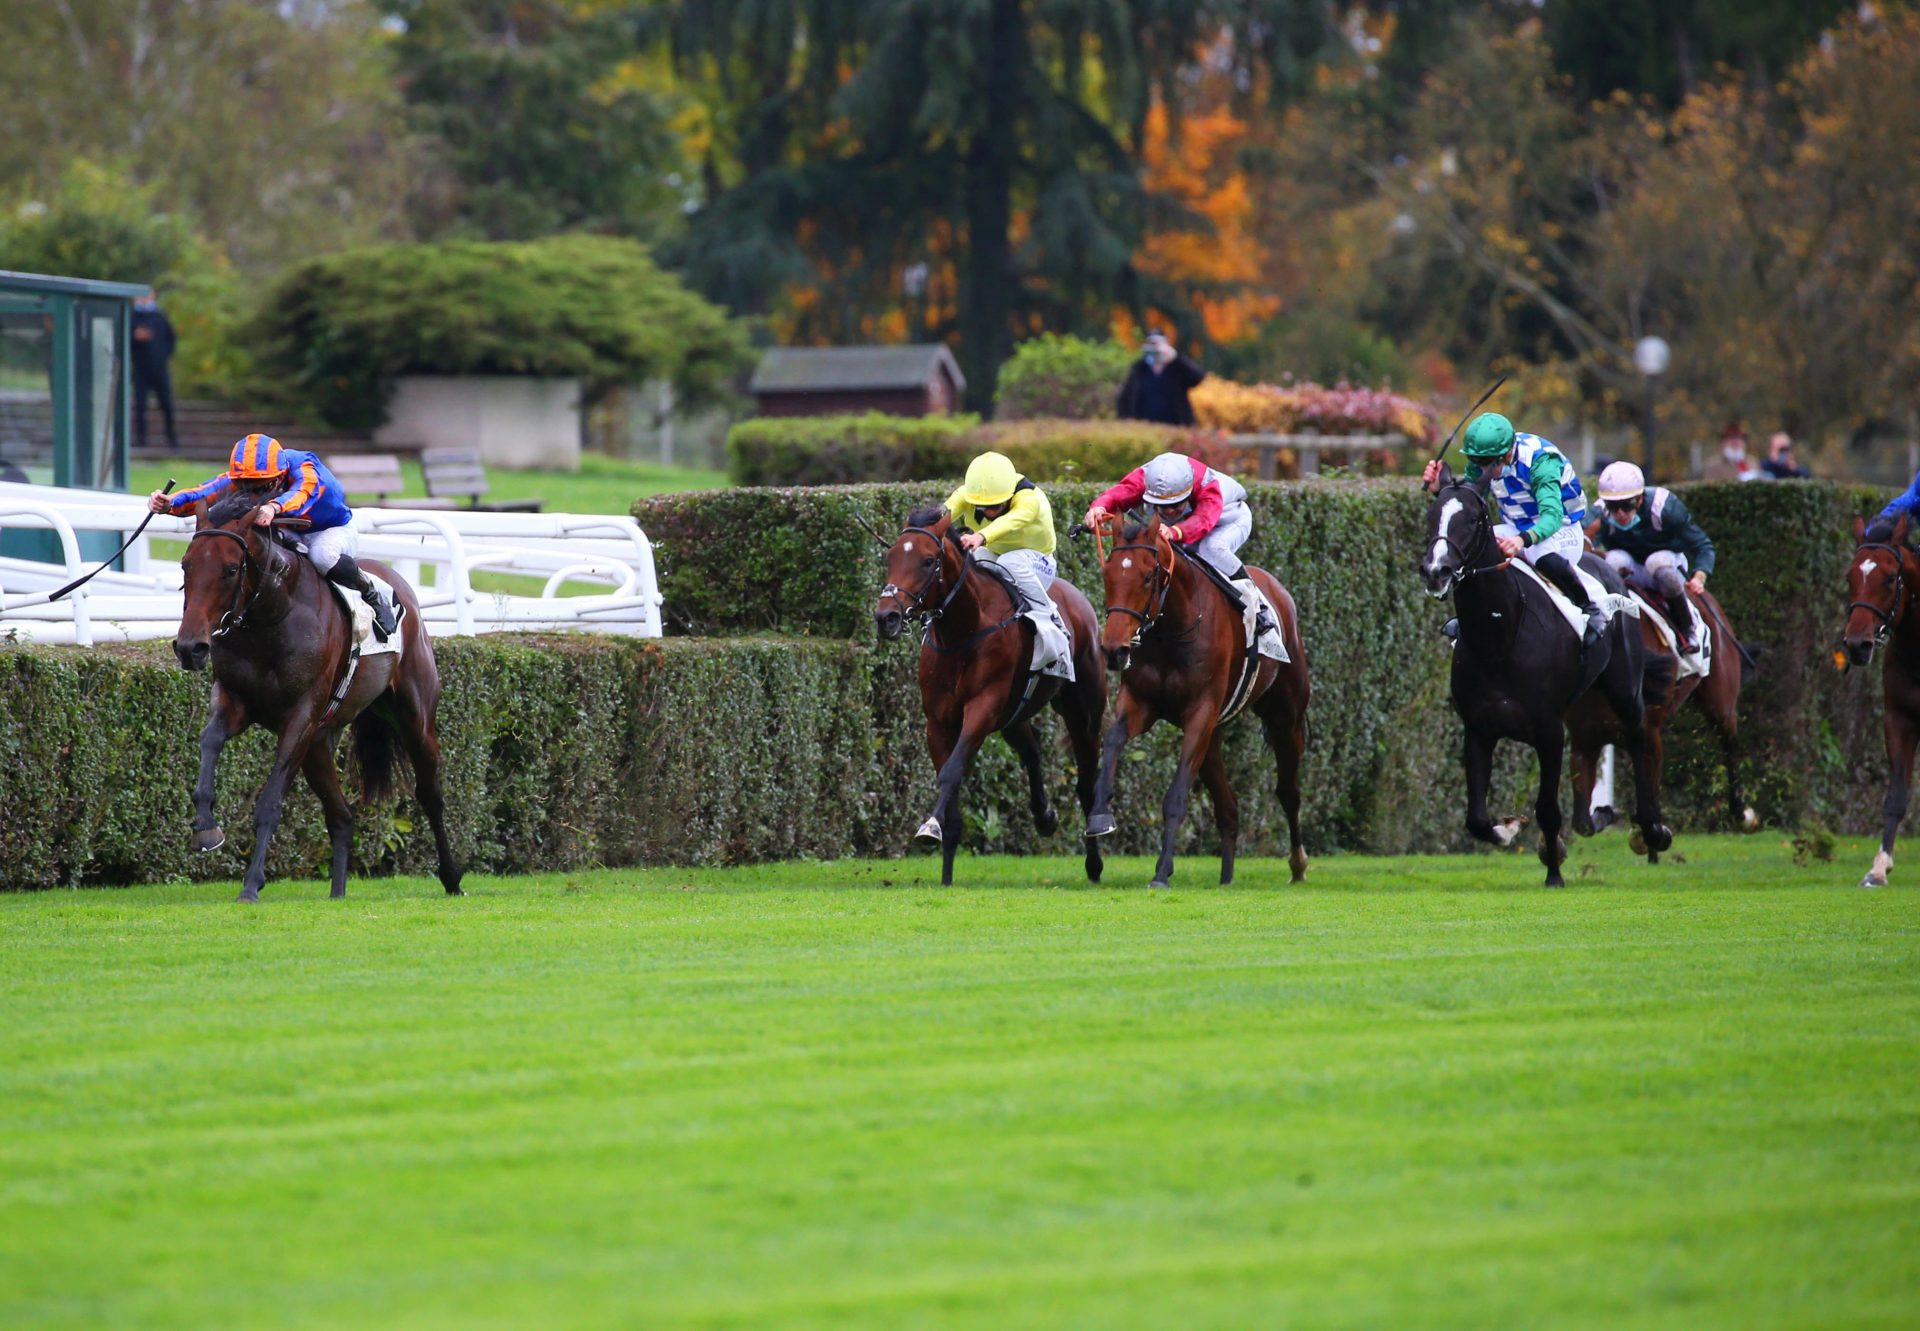 Van Gogh (American Pharoah) Wins Gr.1 Criterium International at Saint-Cloud